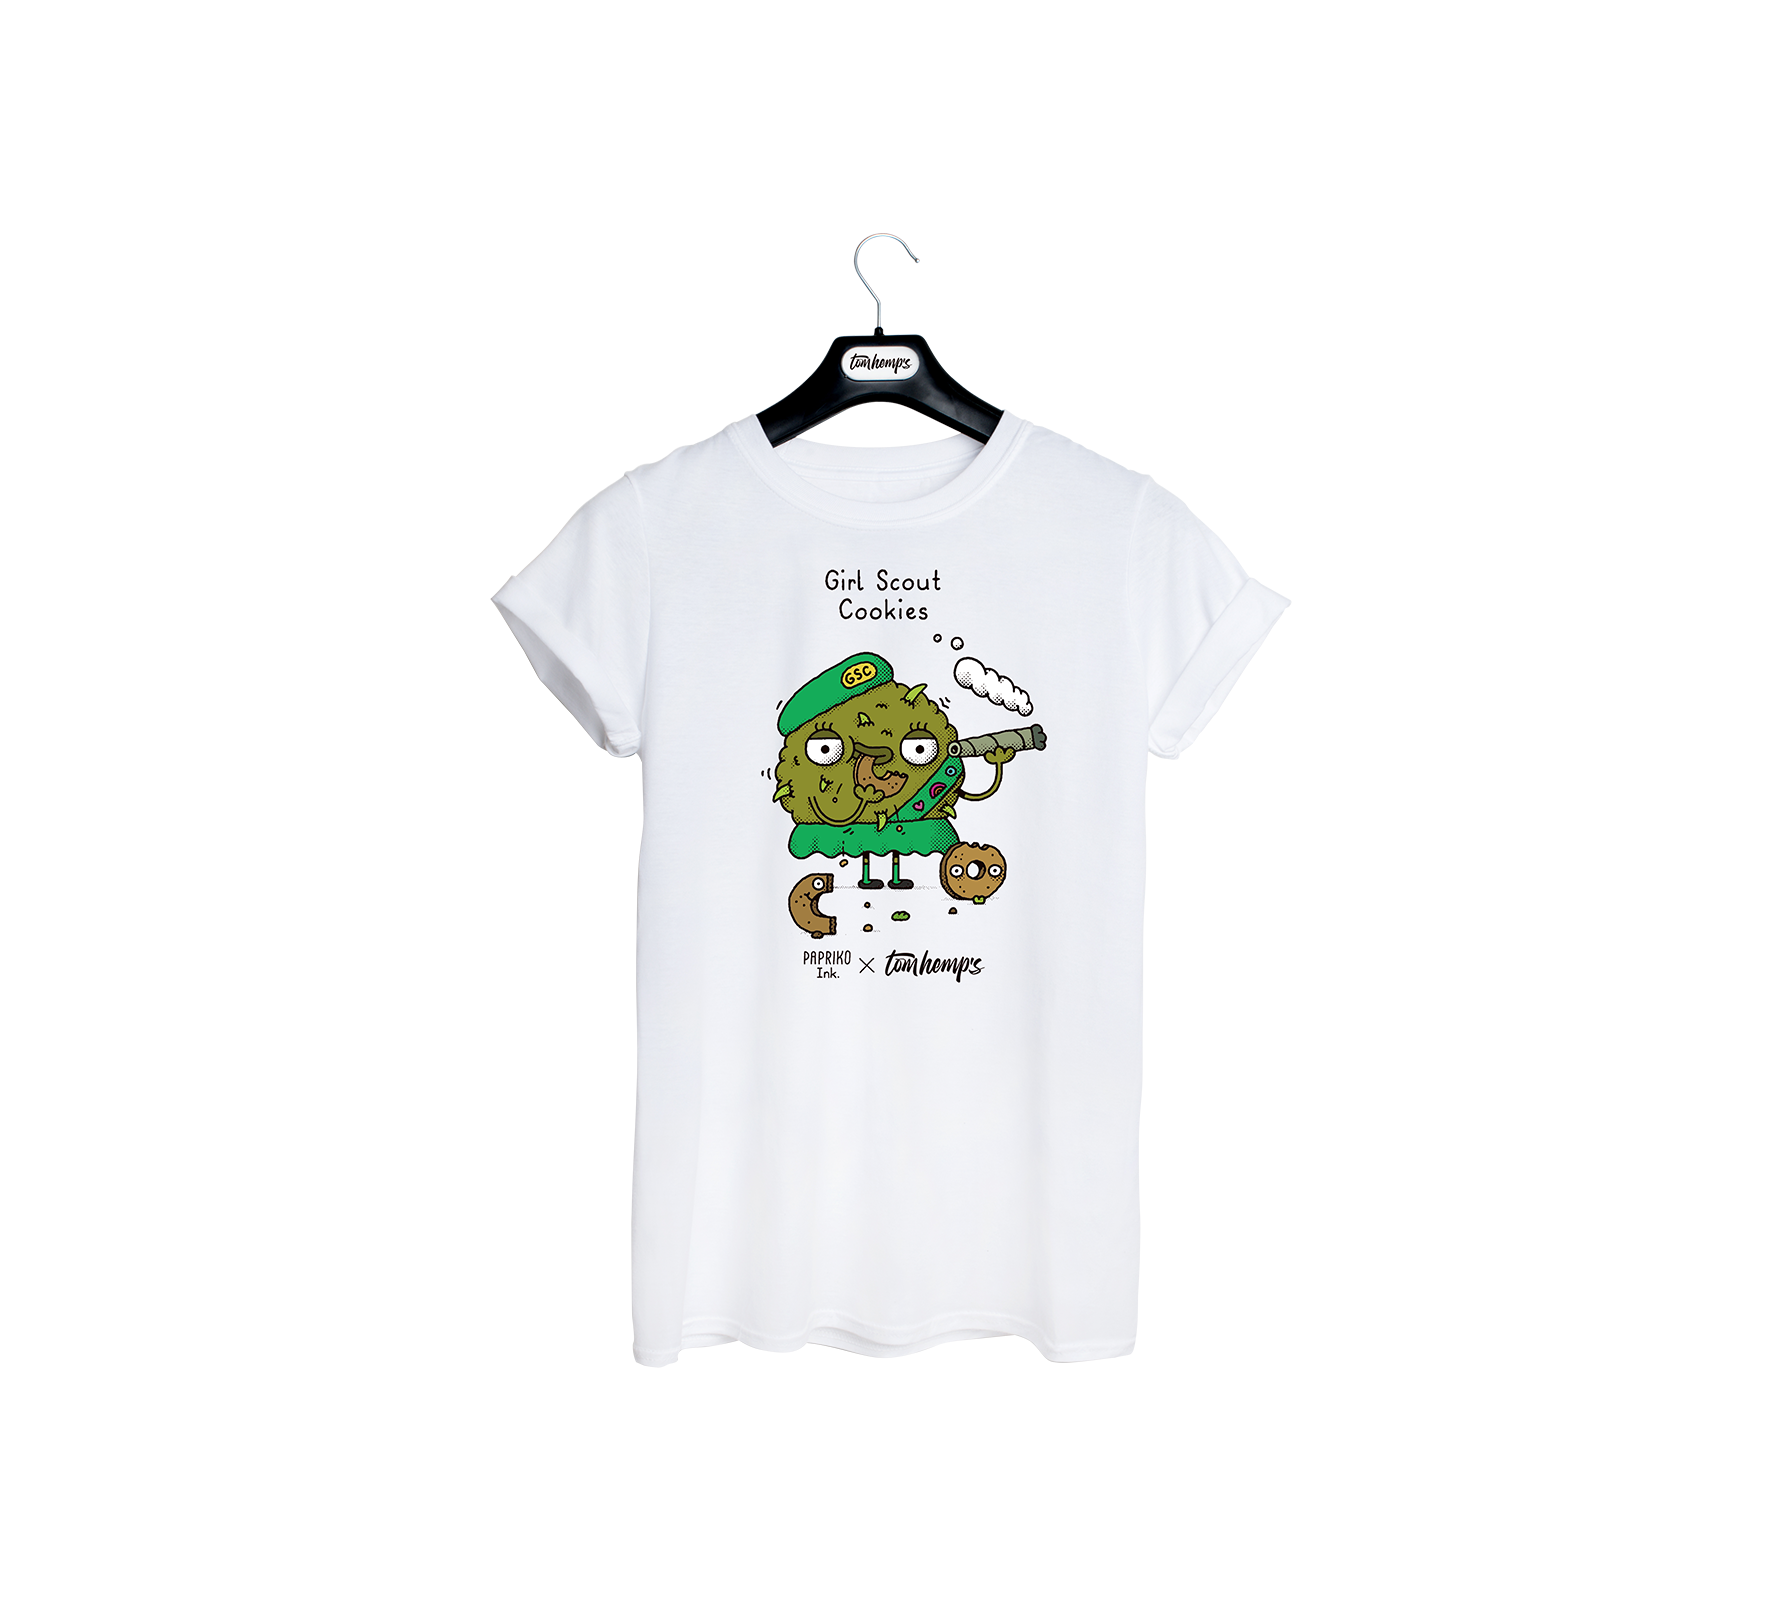 T-Shirt Papriko ink Girl Scout Cookies